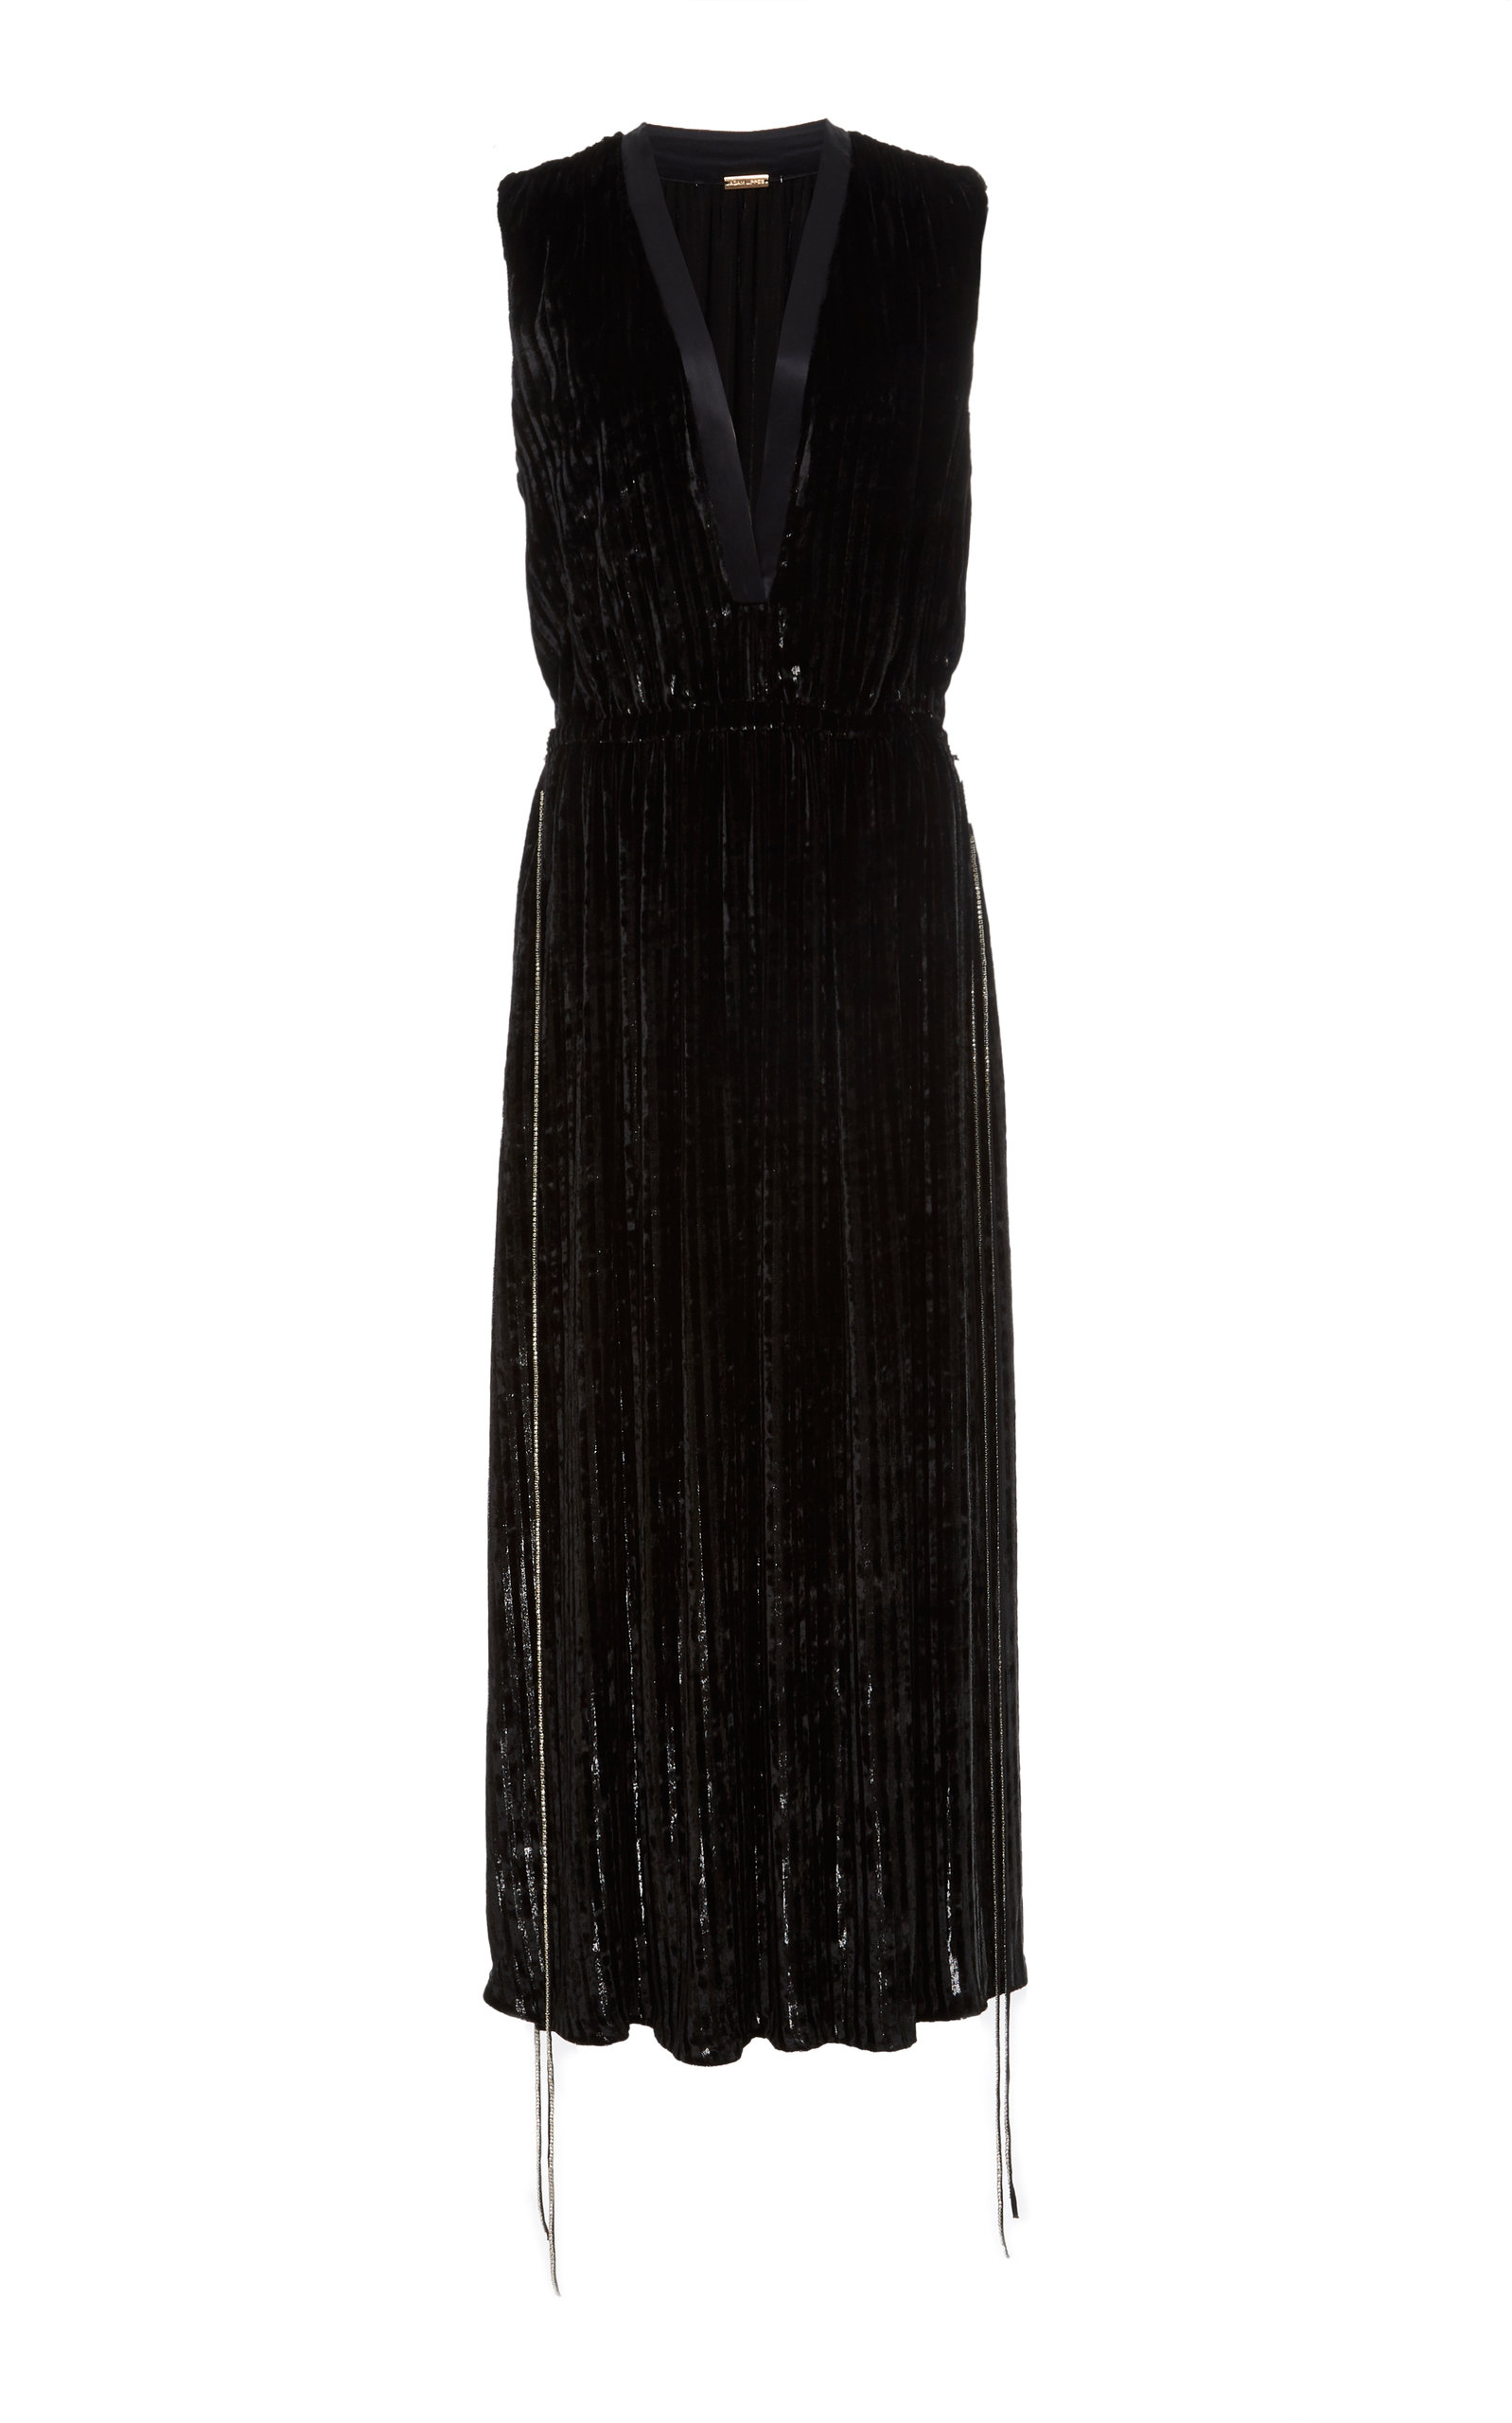 ADAM LIPPES Sleeveless Striped A-Line Cocktail Dress, Black